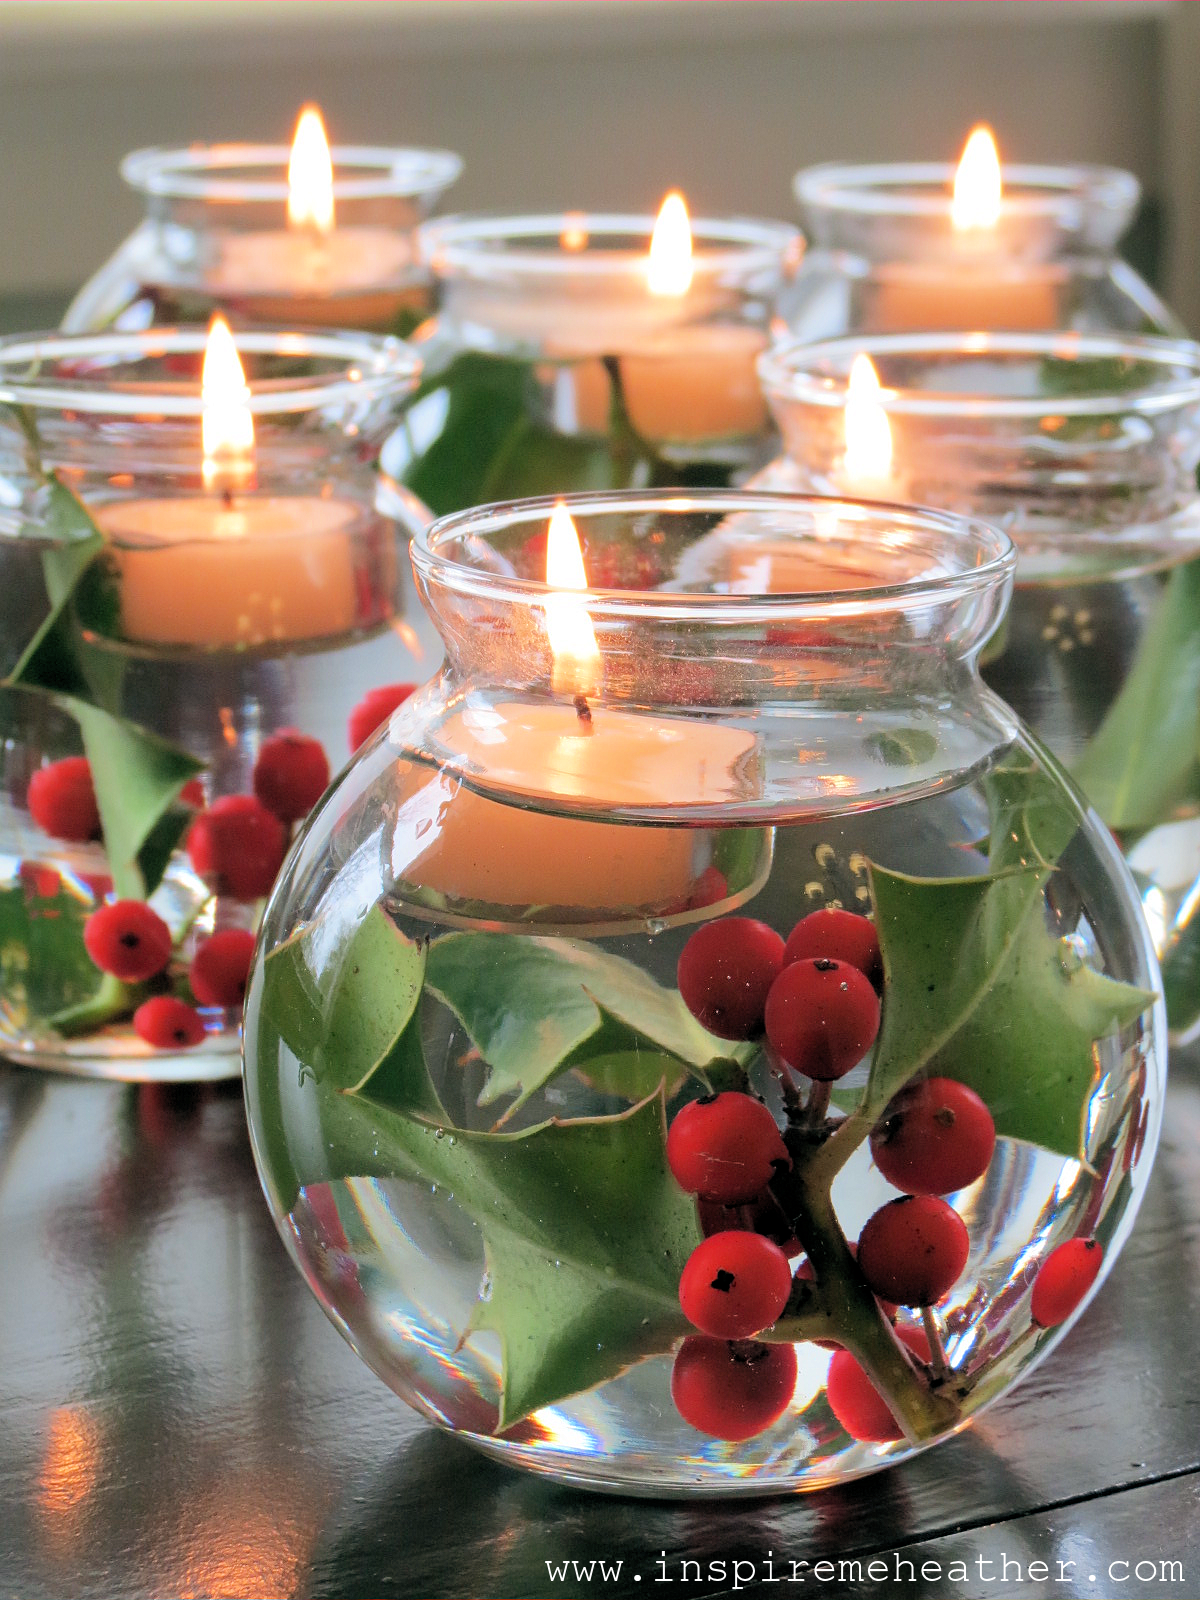 Diy wedding table decorations ideas  Holiday Tabletop Extravaganza All the Little and NotSoLittle